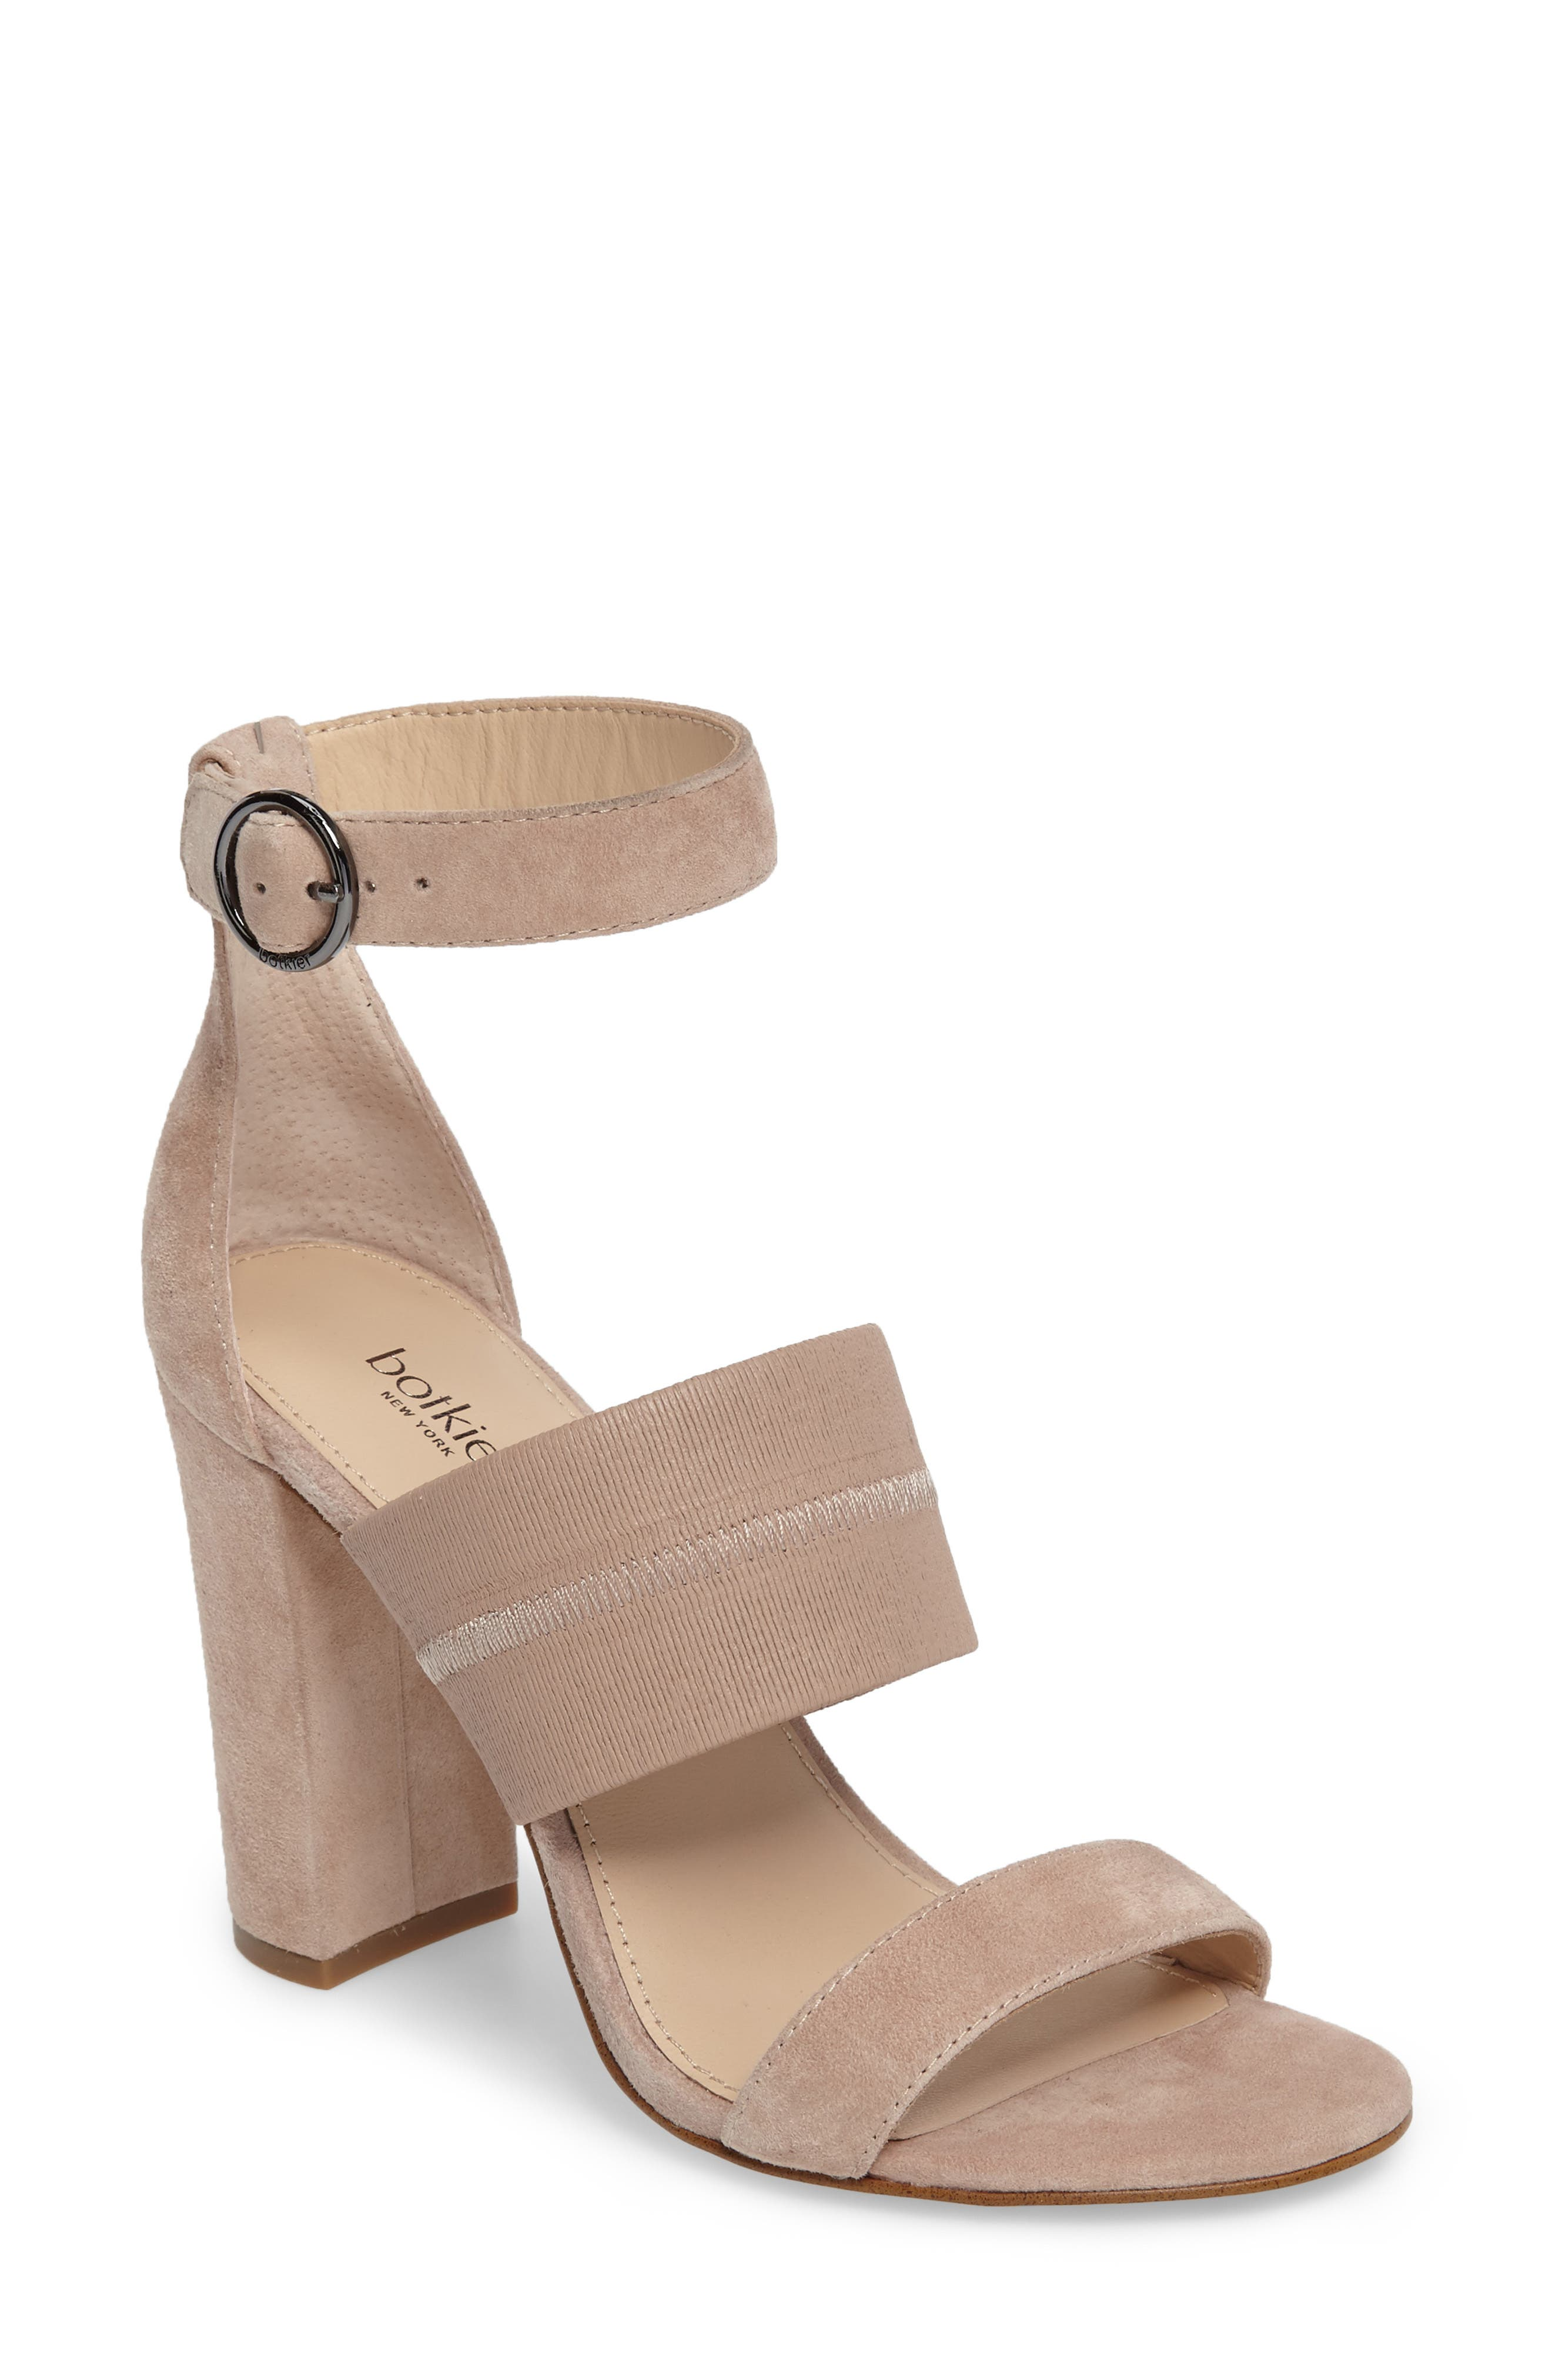 Gisella Ankle Strap Sandal,                         Main,                         color, Blush Leather